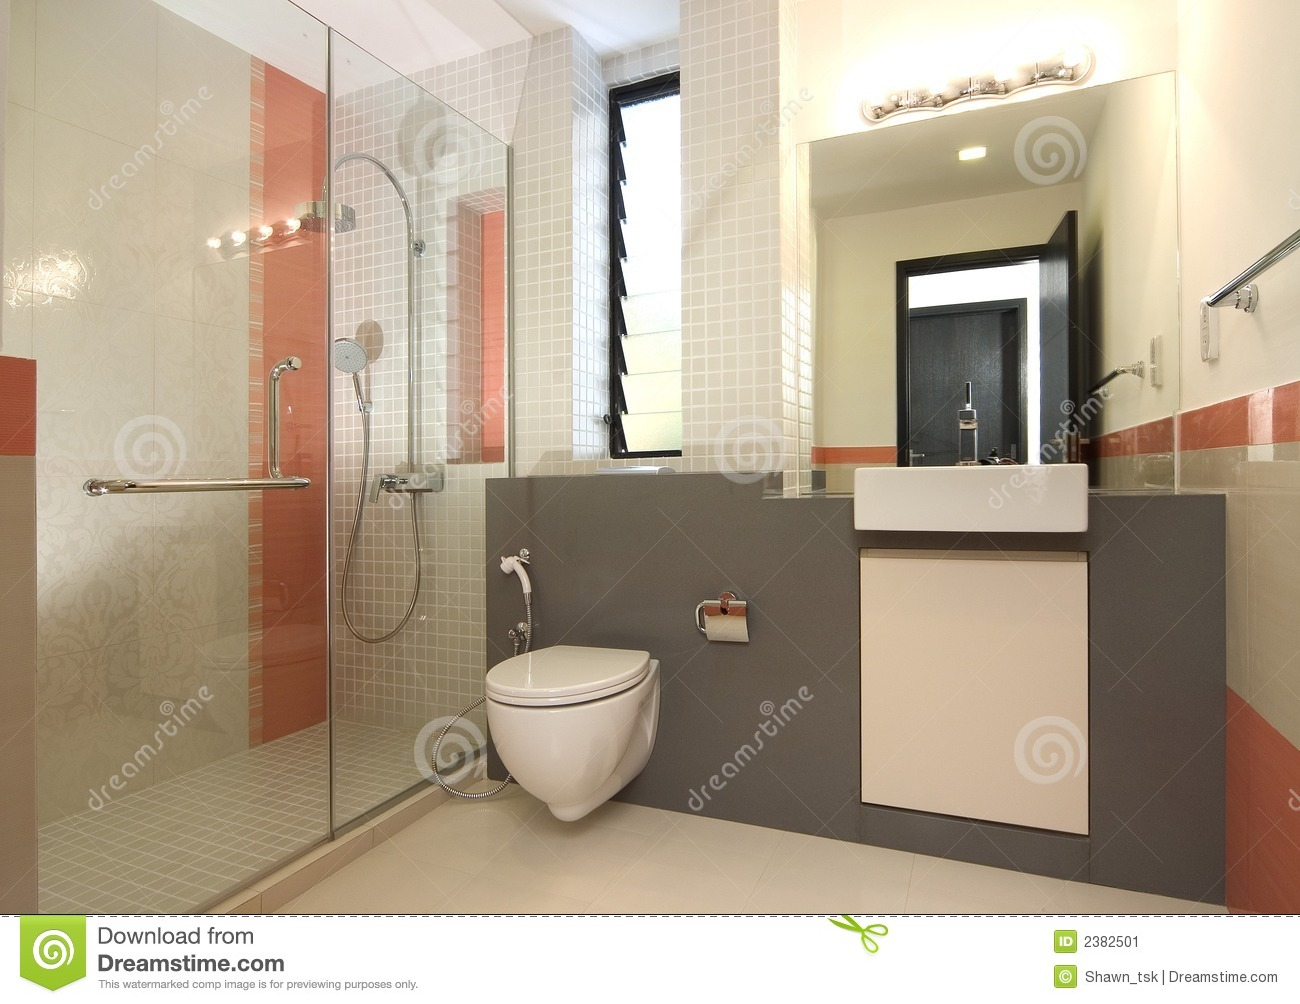 Interior design bathroom stock image image of light for Interior decoration of small bathroom